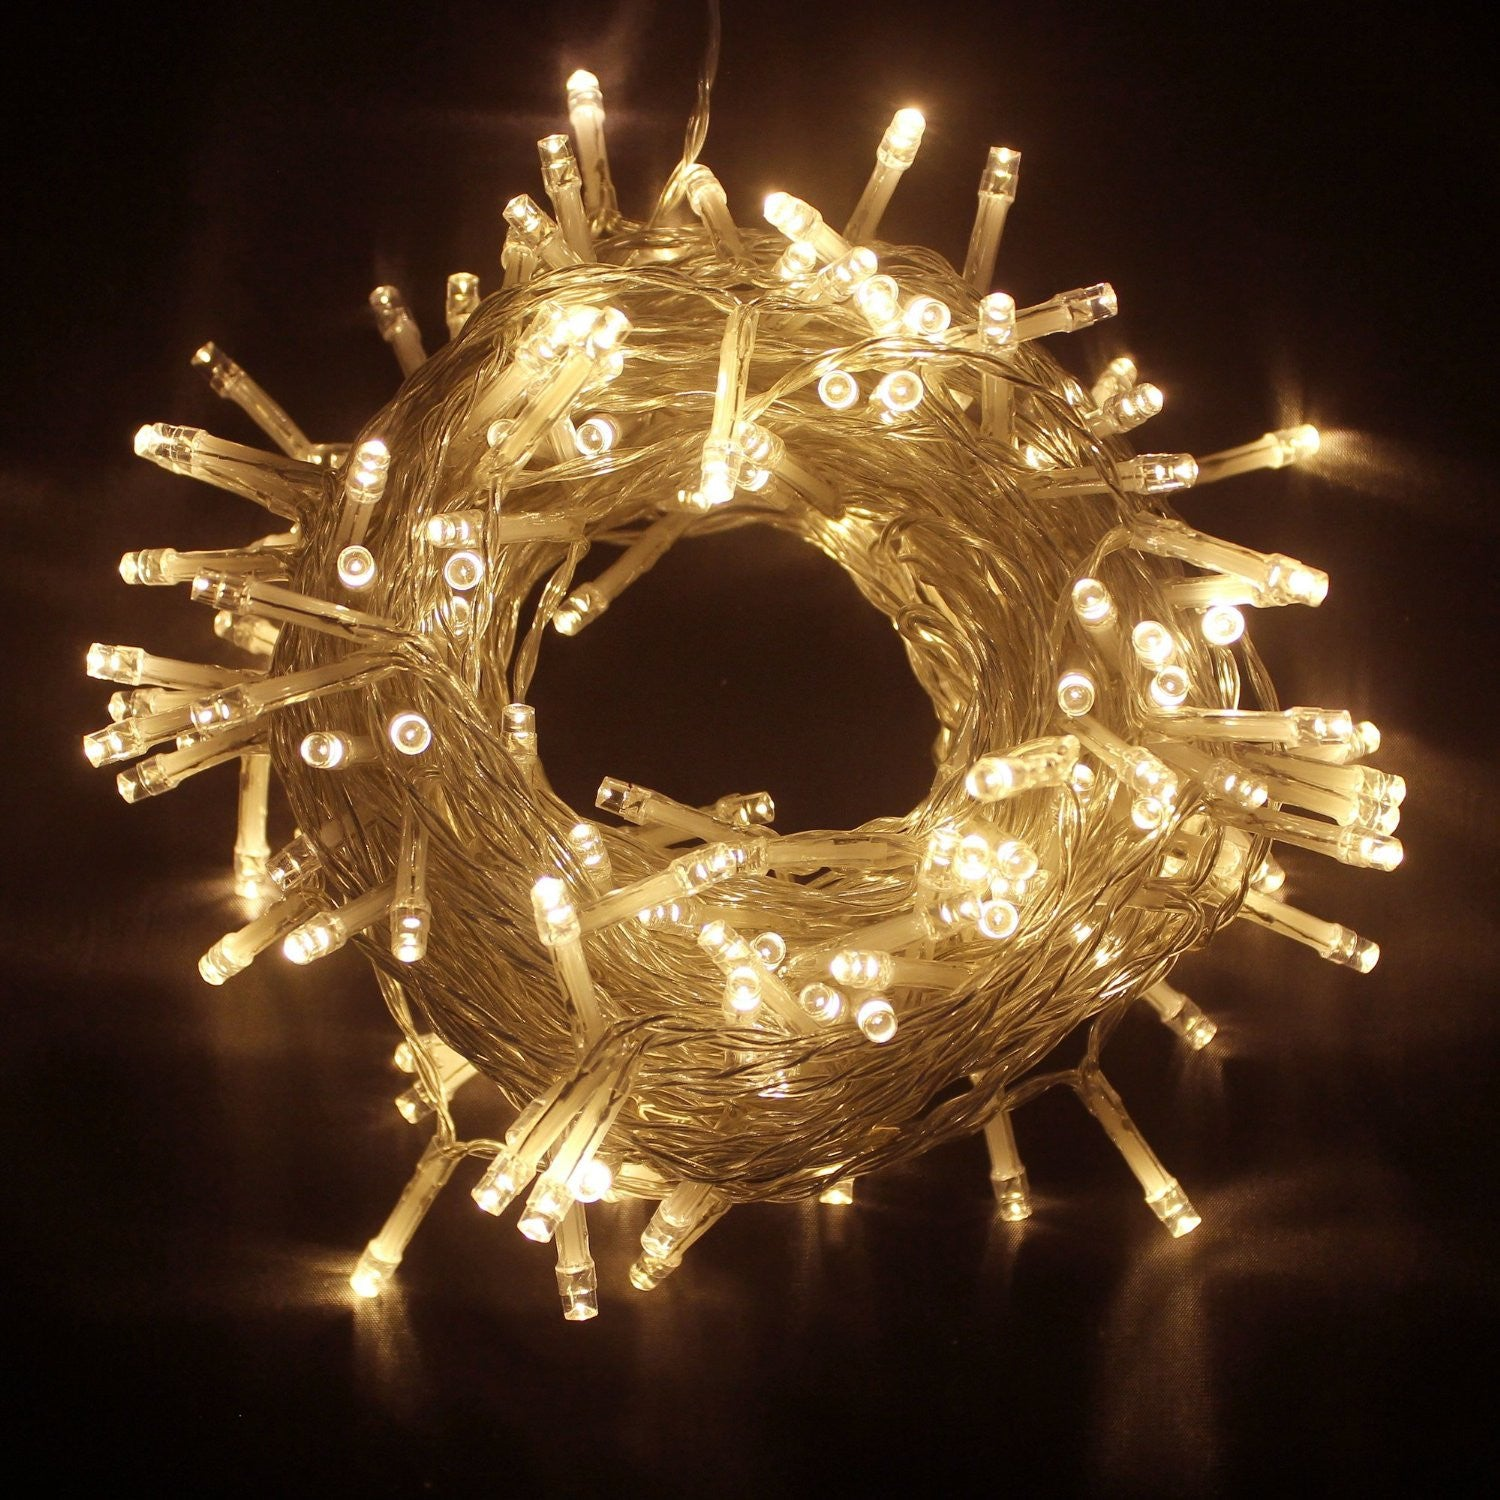 400 led warm white fairy string lights 8 function